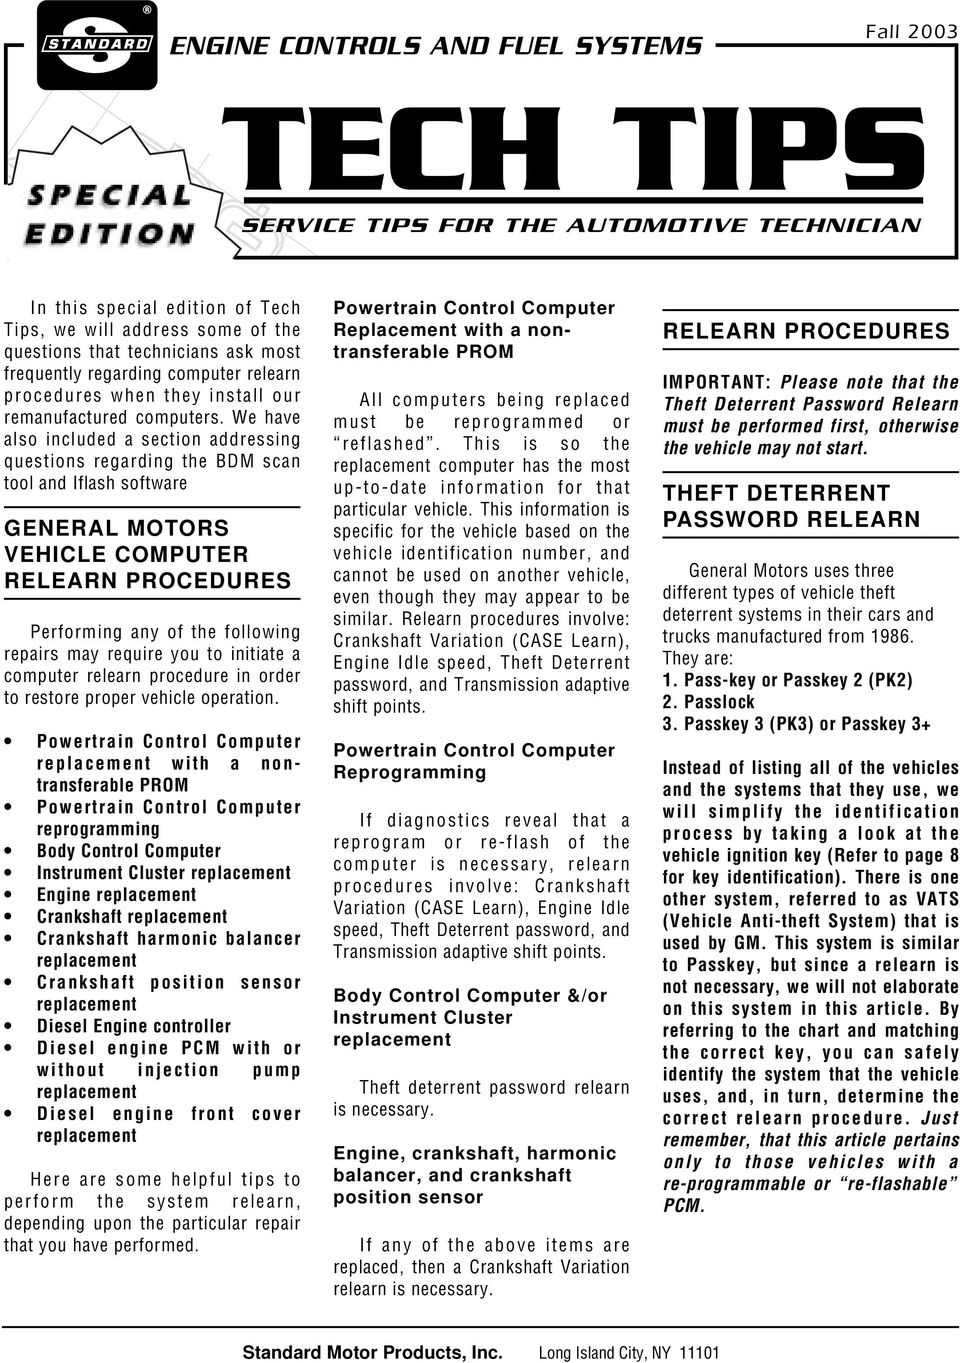 ENGINE CONTROLS AND FUEL SYSTEMS - PDF